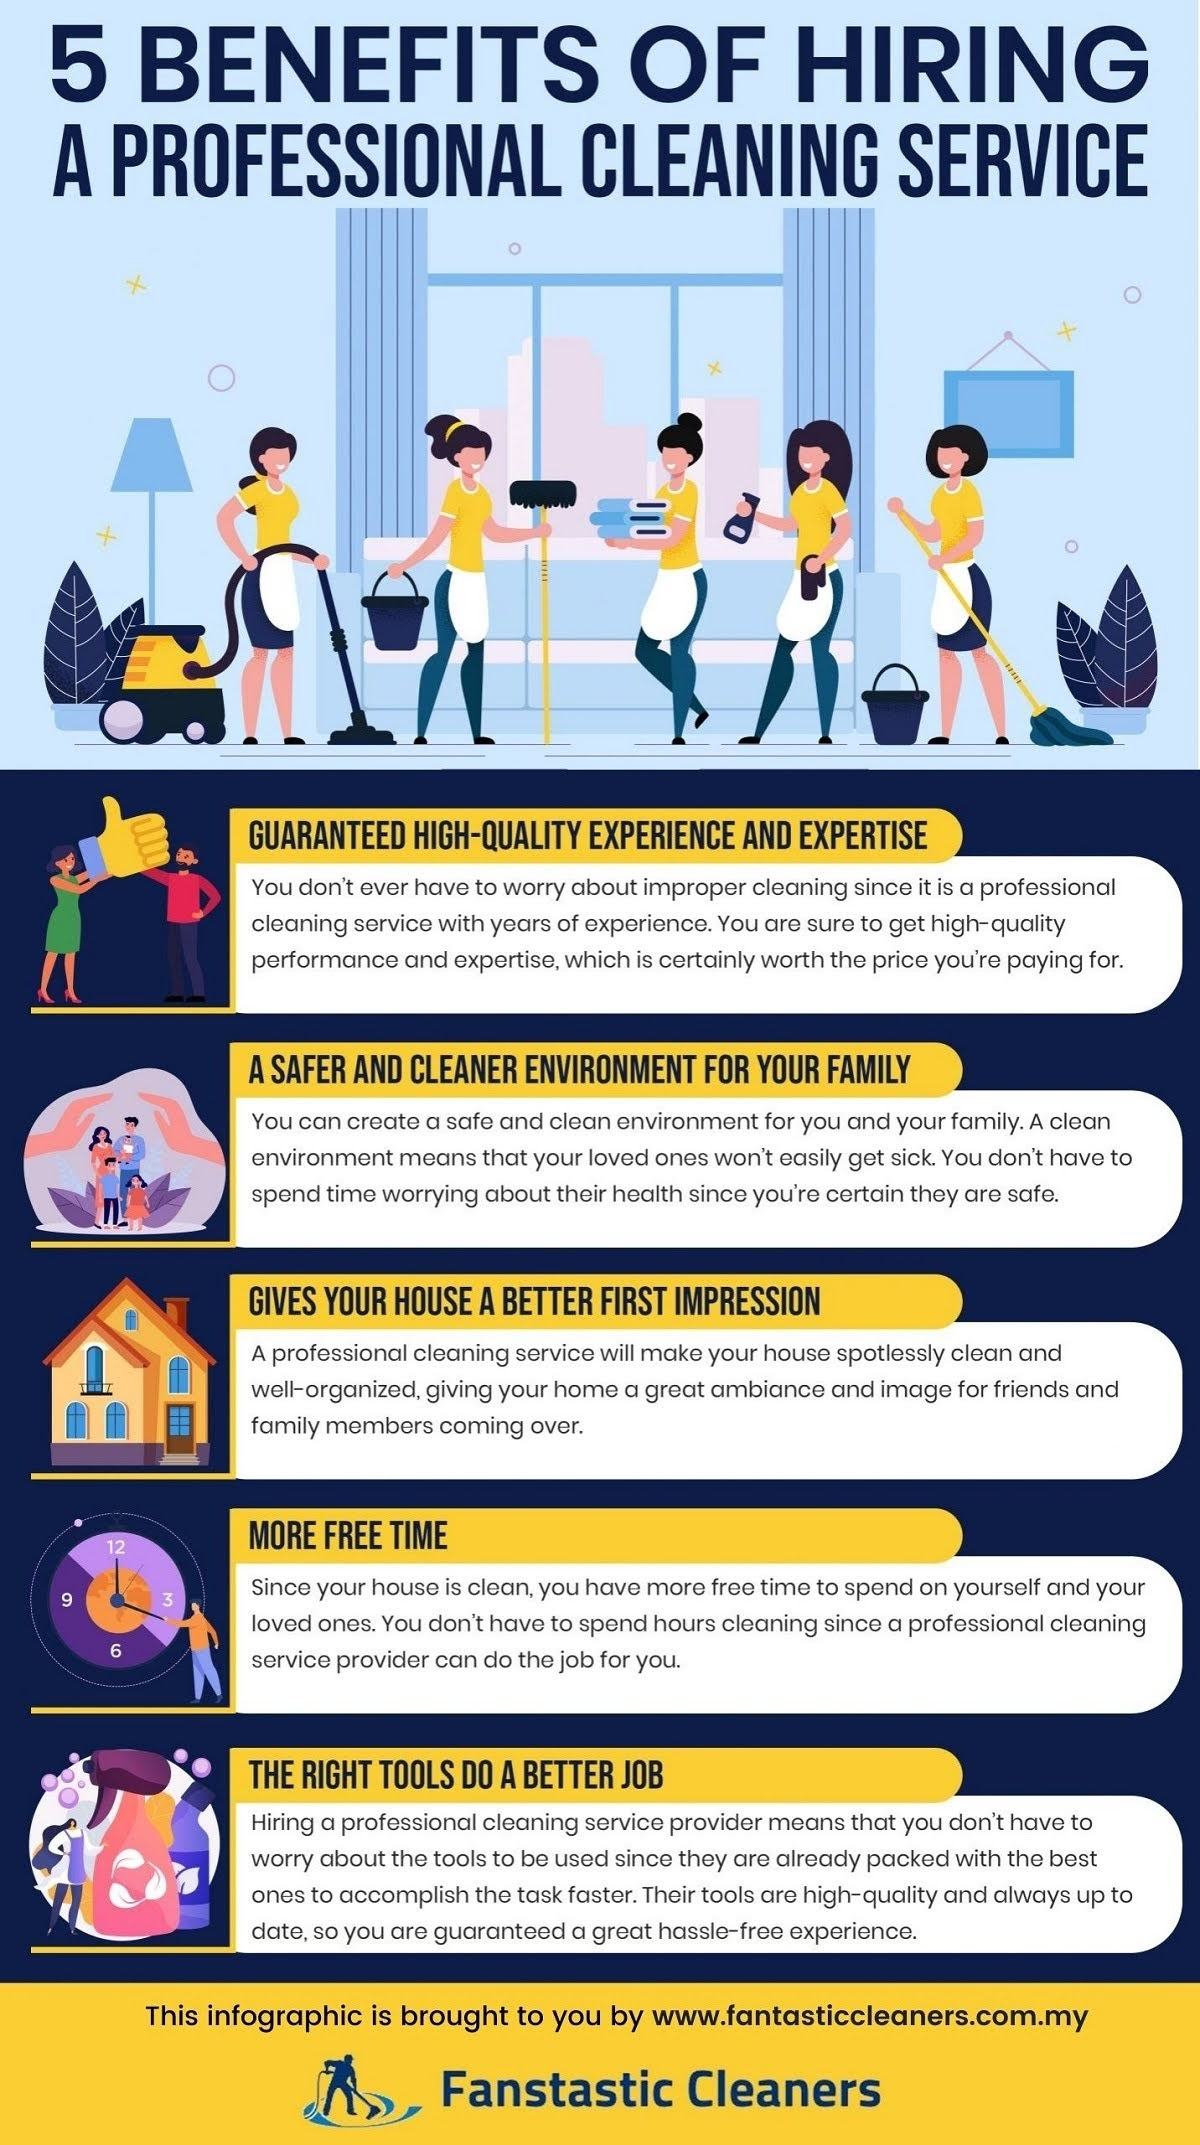 benefits-of-hiring-a-professional-cleaning-service-infographic